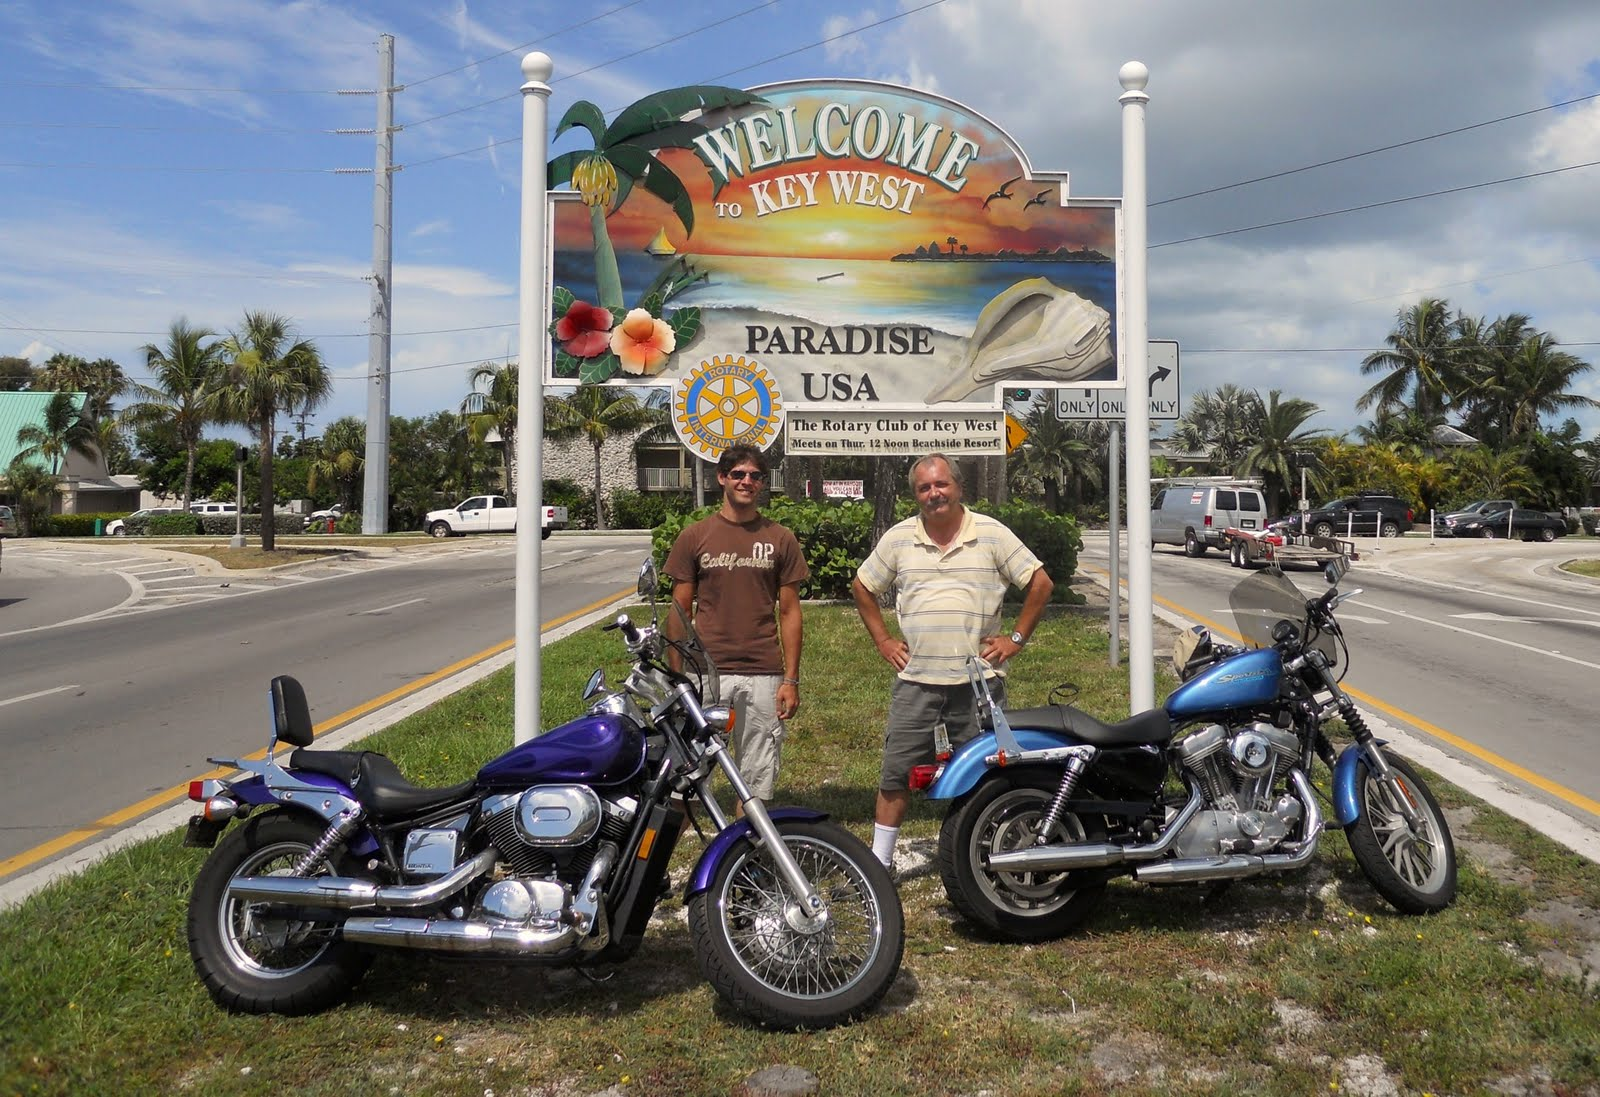 Bob Barbanes Florida End To On Motorcycle Honda Shadow Jacob And I Recently Rode Our Motorcycles From Pensacola Down Key West His Me My Harley Sportster